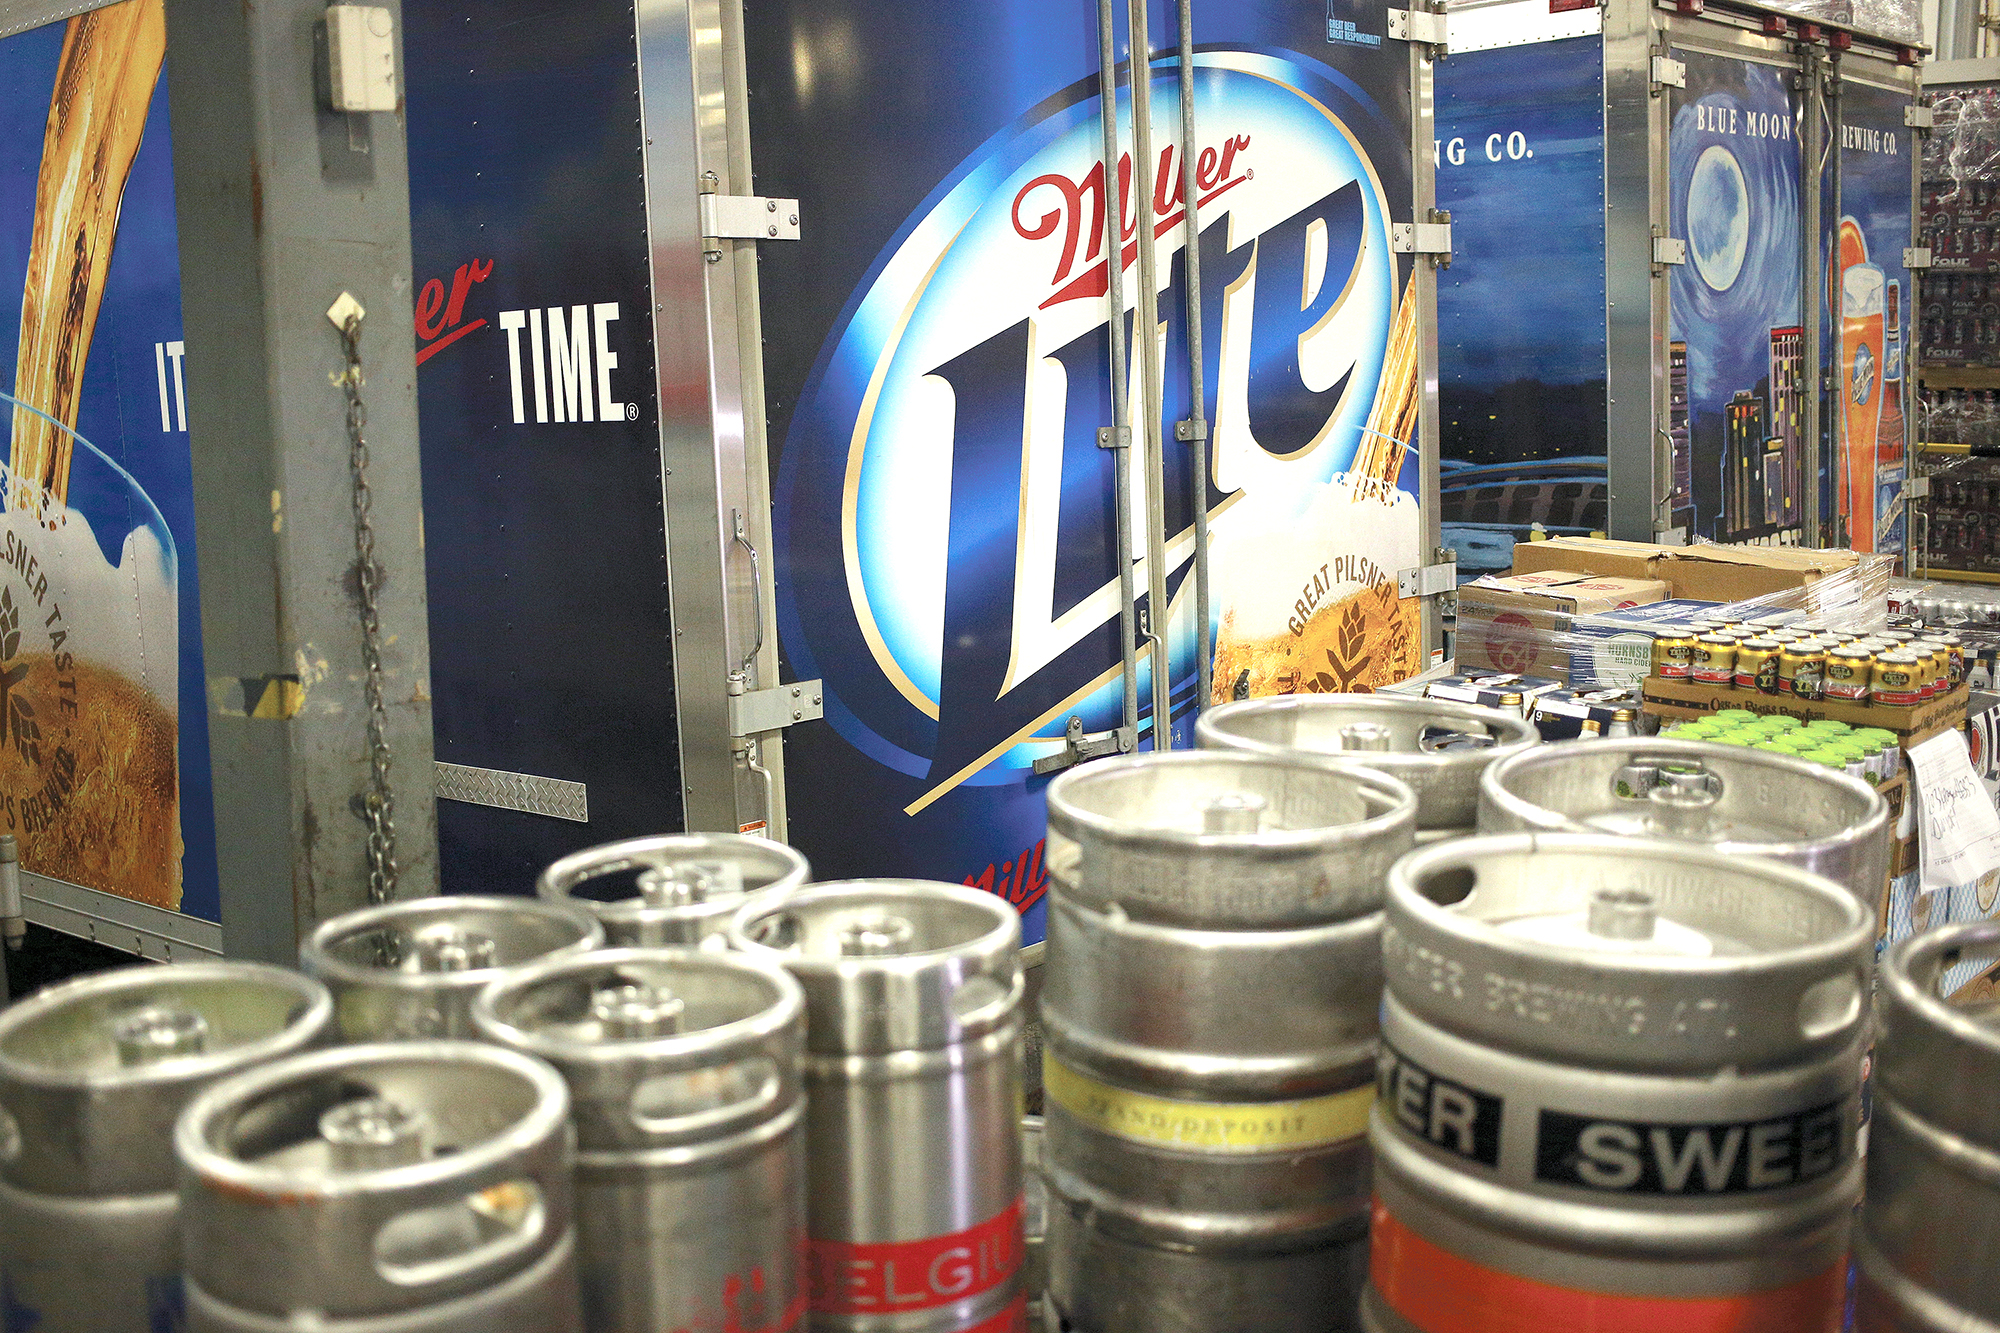 MillerCoors Execs Think the Future of Craft Beer Is MillerCoors, Basically MillerCoors Execs Think the Future of Craft Beer Is MillerCoors, Basically new picture